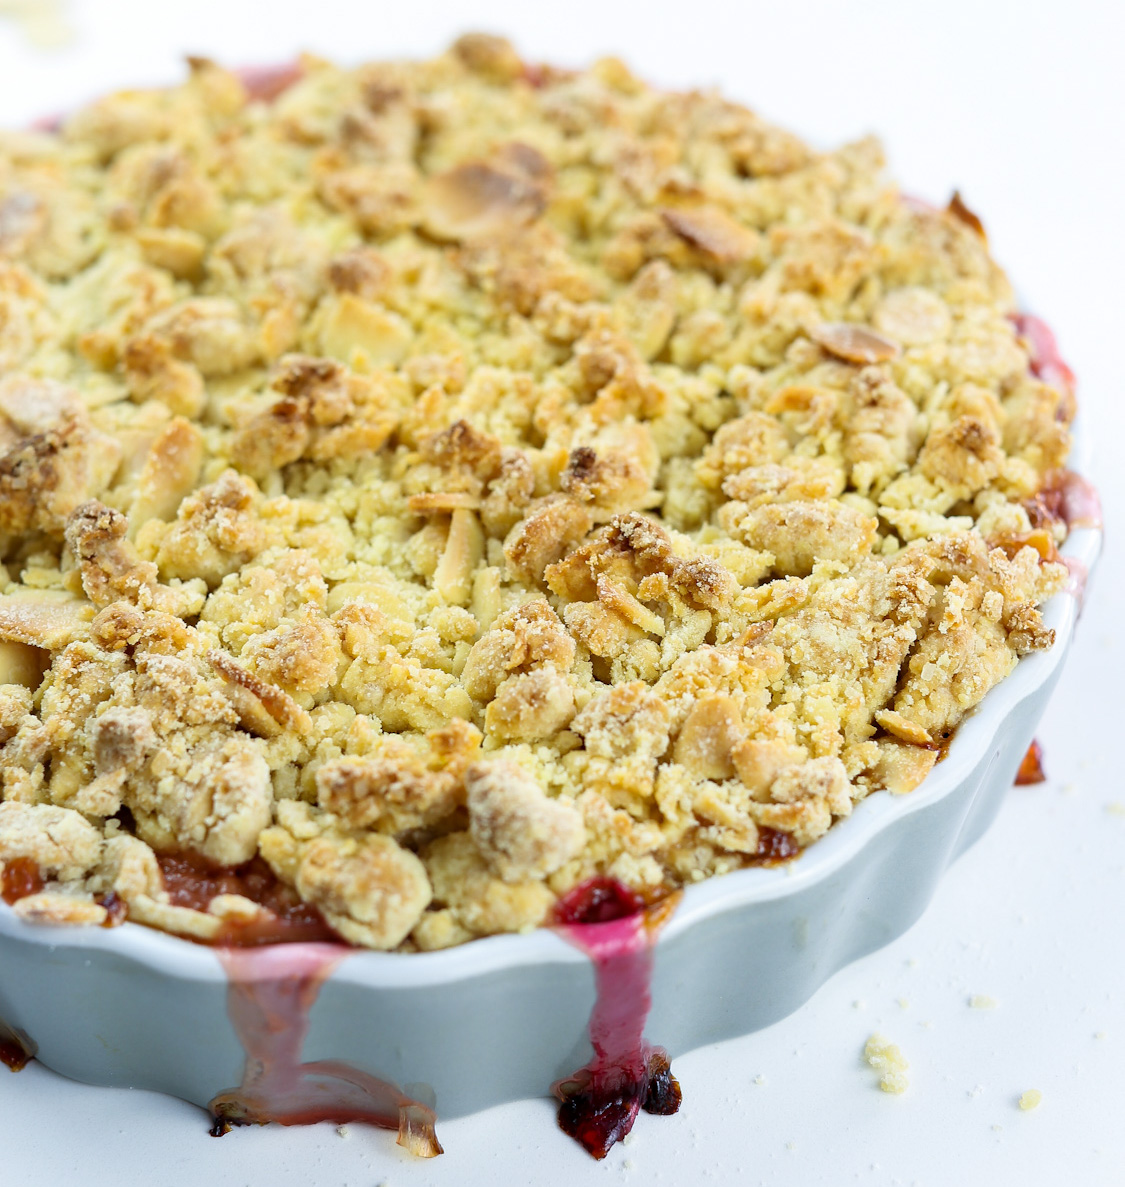 Vegan Rhubarb & Amaretto Crumble